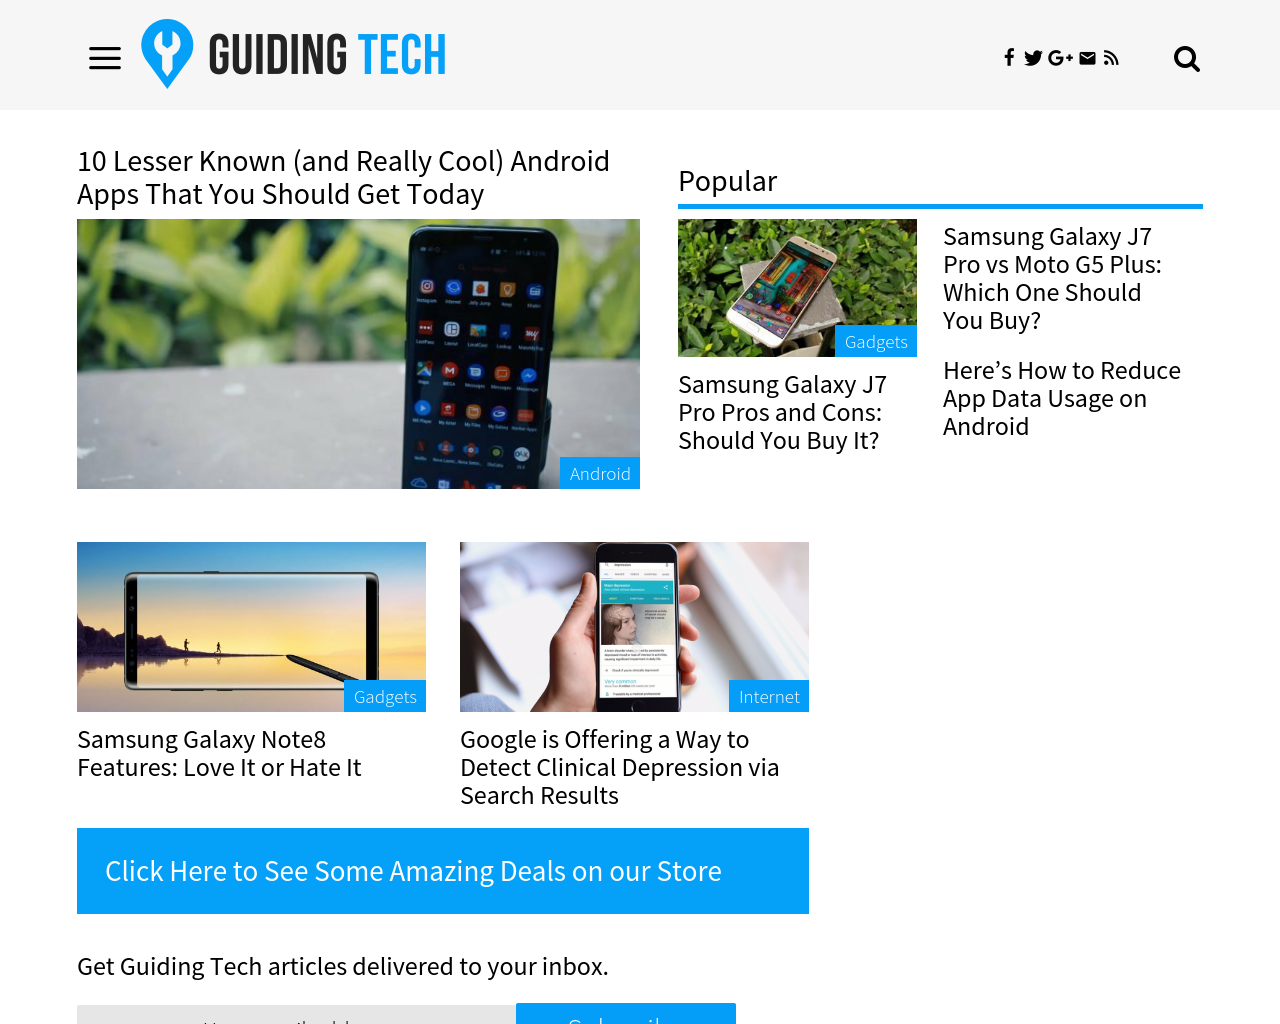 Guiding-Tech-Advertising-Reviews-Pricing